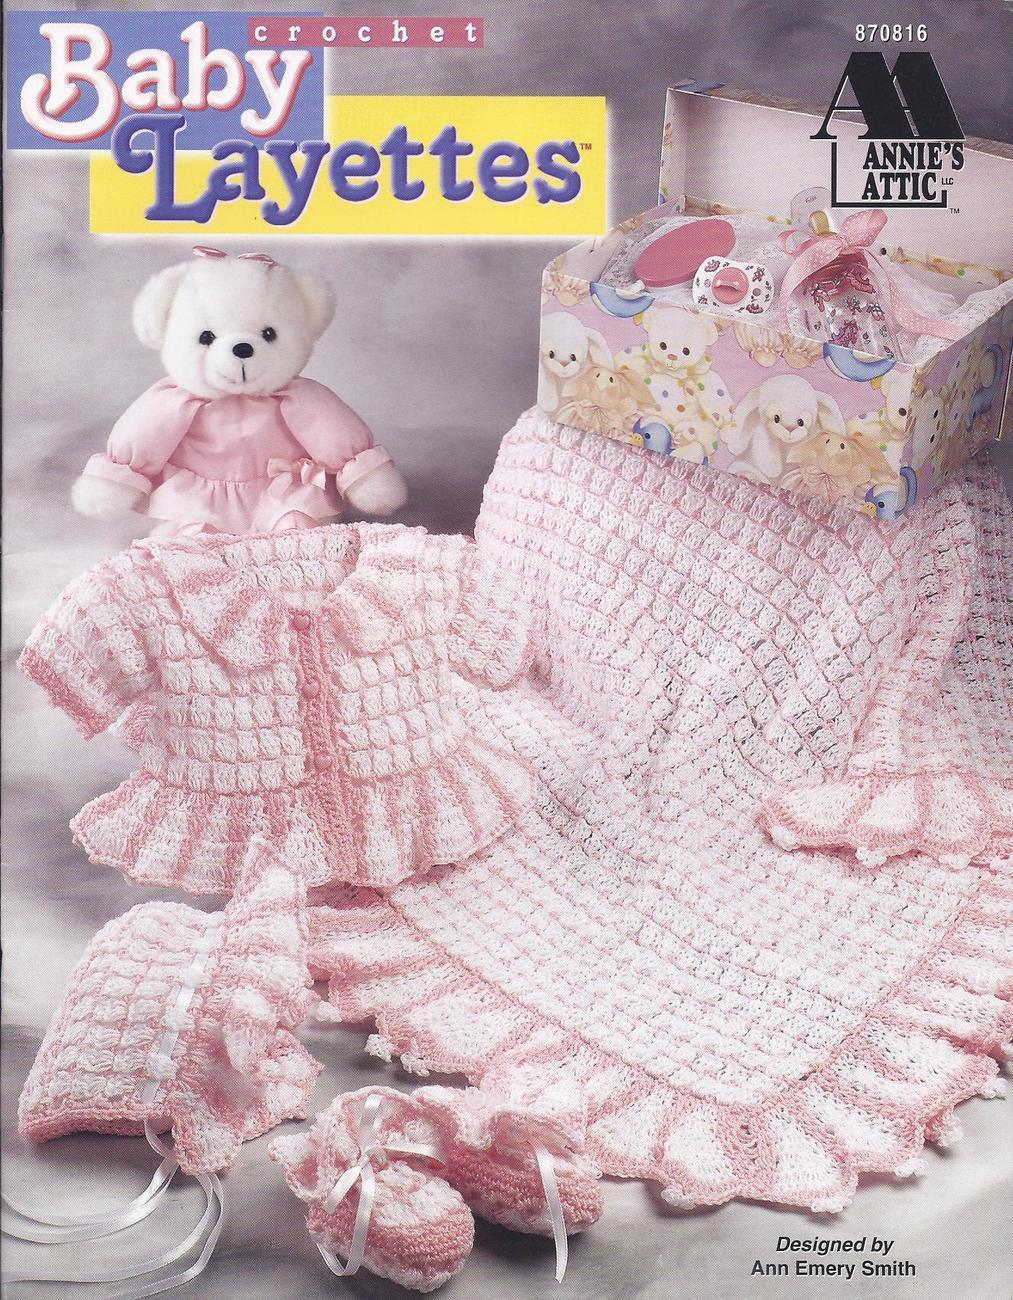 Annies Crochet Patterns : Annies Attic Crochet Pattern (1990s): 53 listings - Bonanza